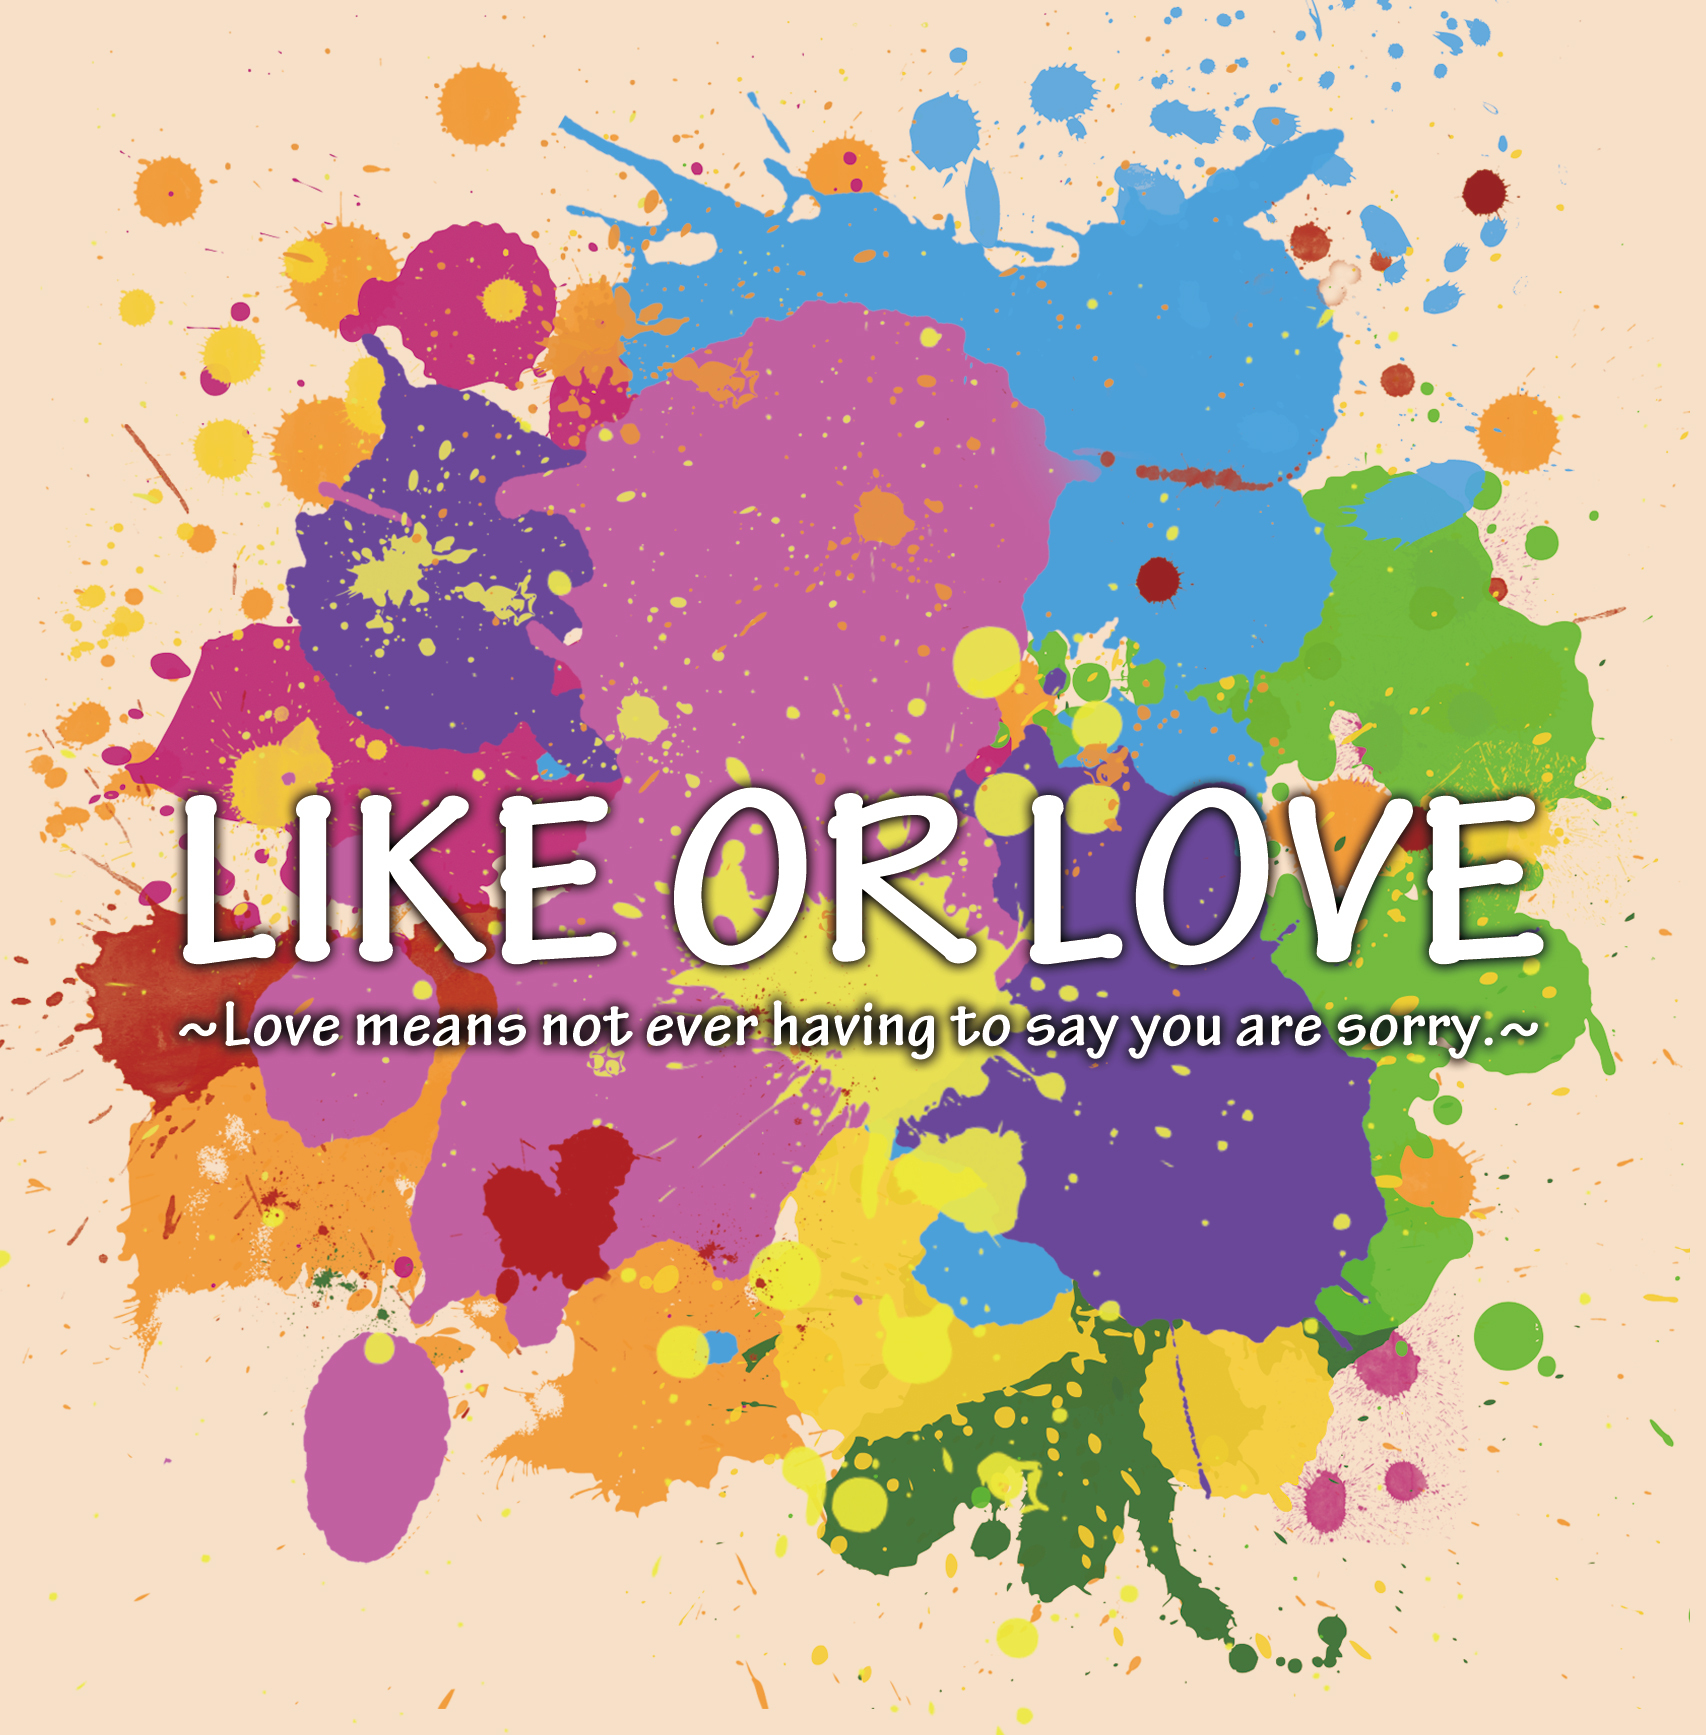 LIKE OR LOVE ~Love means not having to say you are sorry~